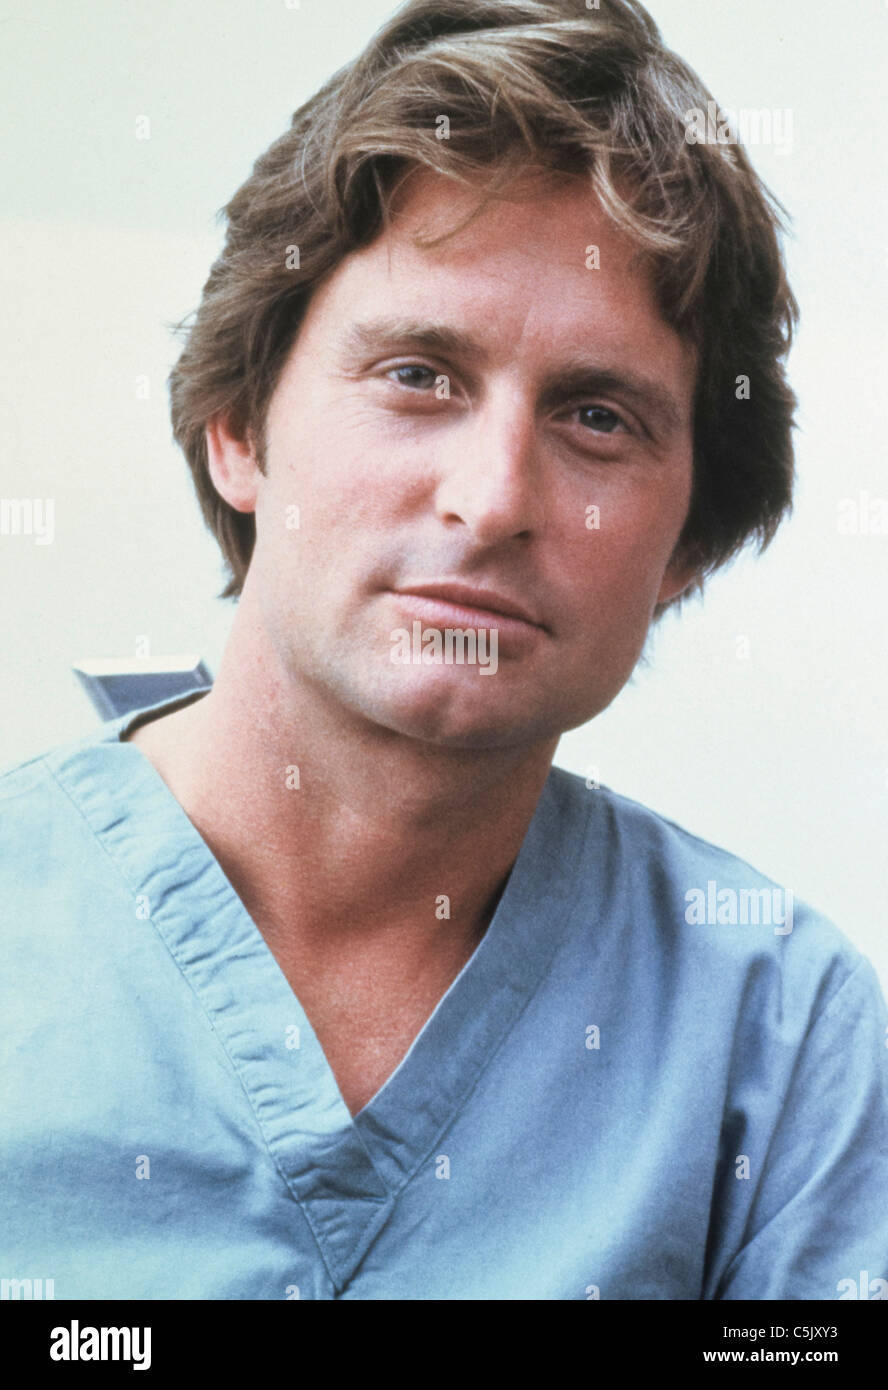 Coma 1978 Michael Douglas Stock Photos and Images